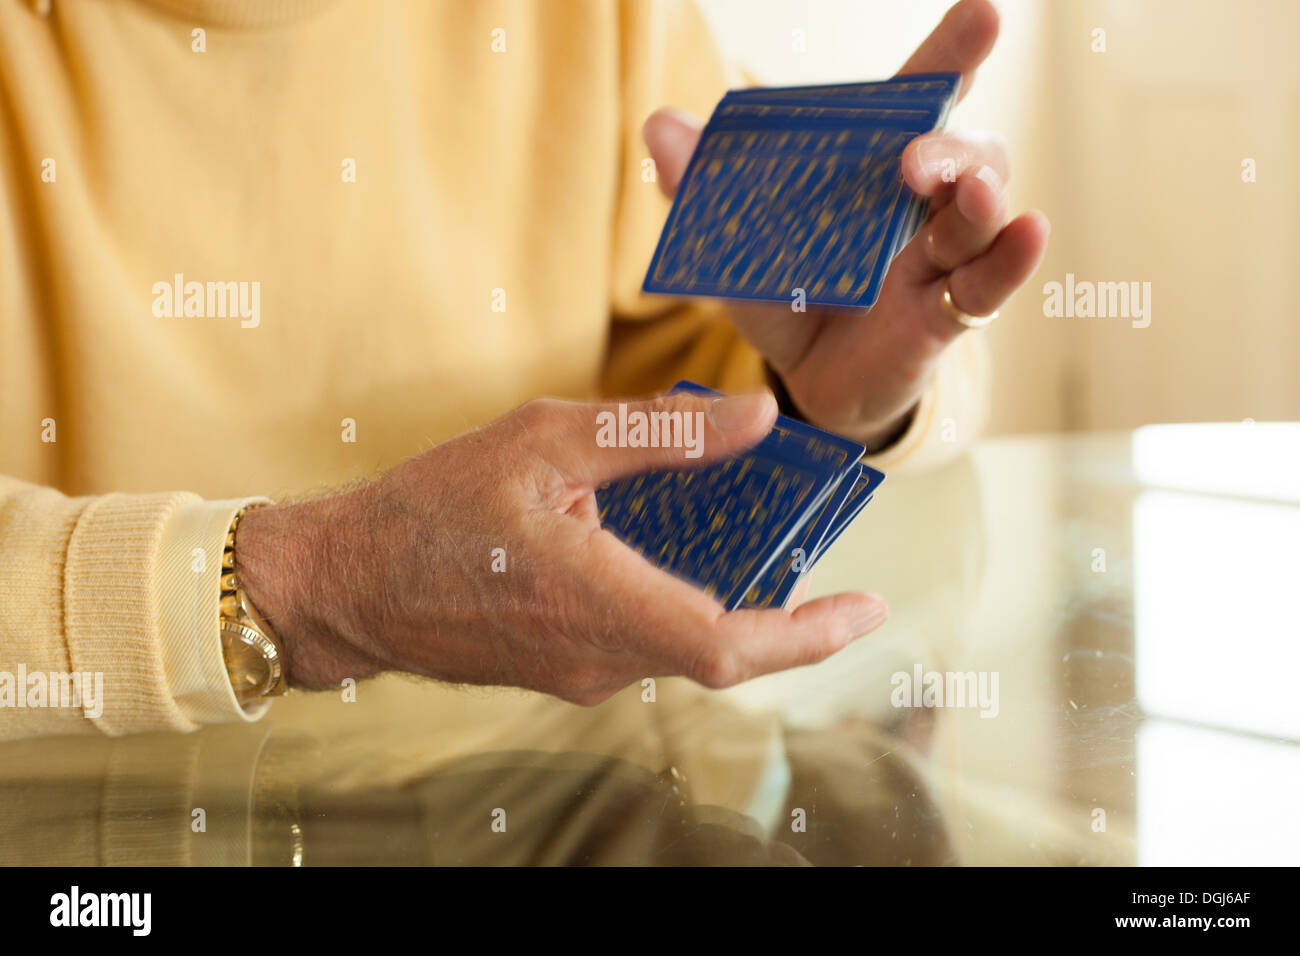 Close up of aged hands shuffling playing cards - Stock Image